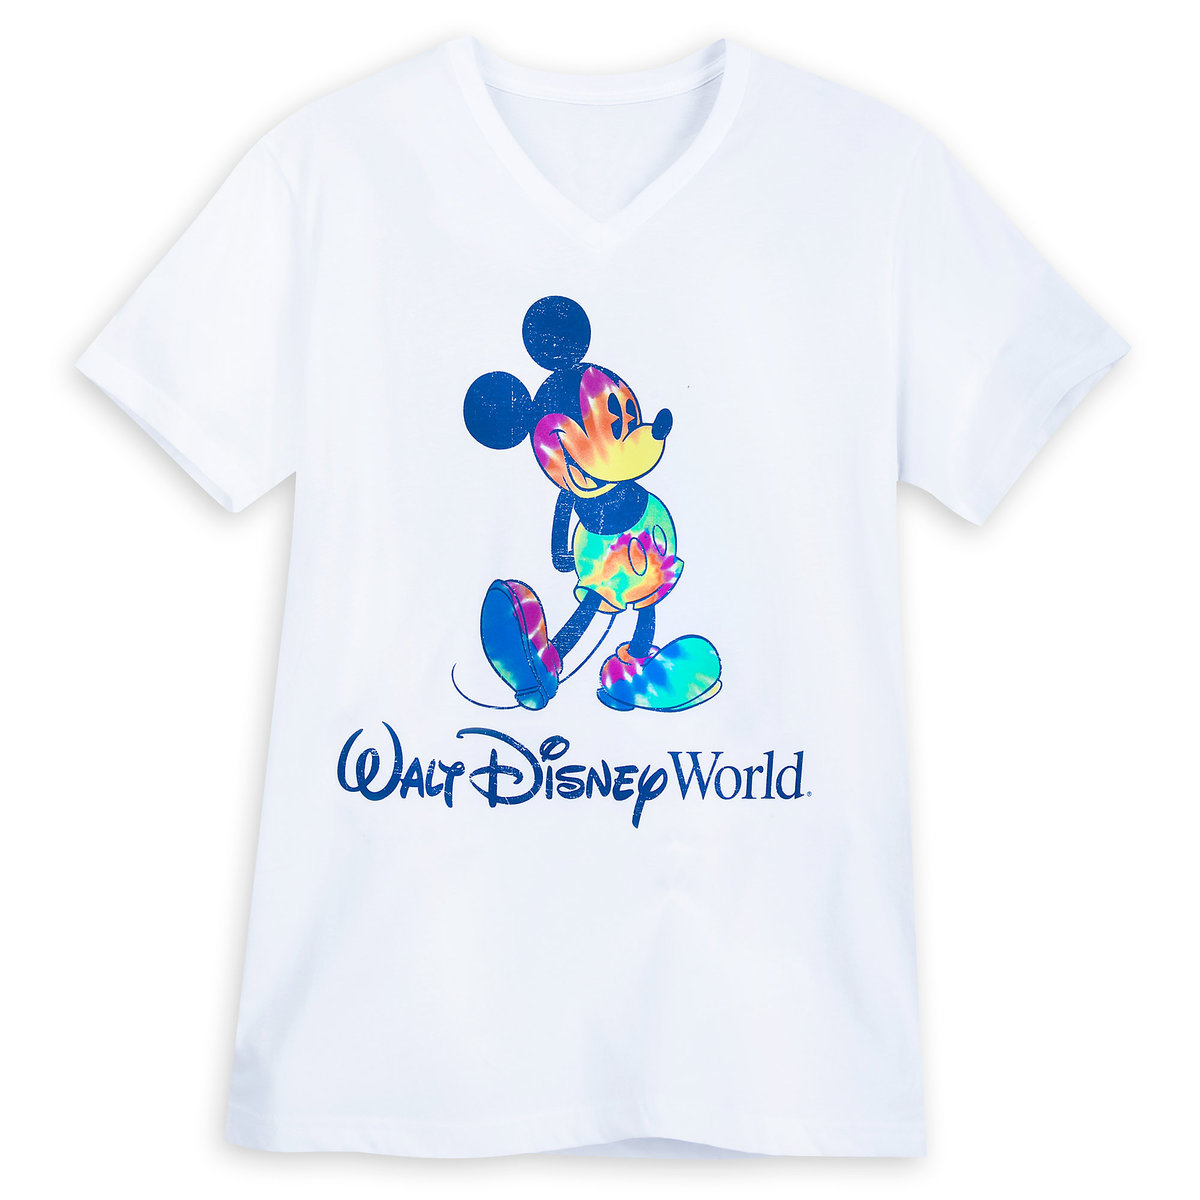 18017db7 Product Image of Mickey Mouse Tie-Dye Print T-Shirt for Adults - Walt